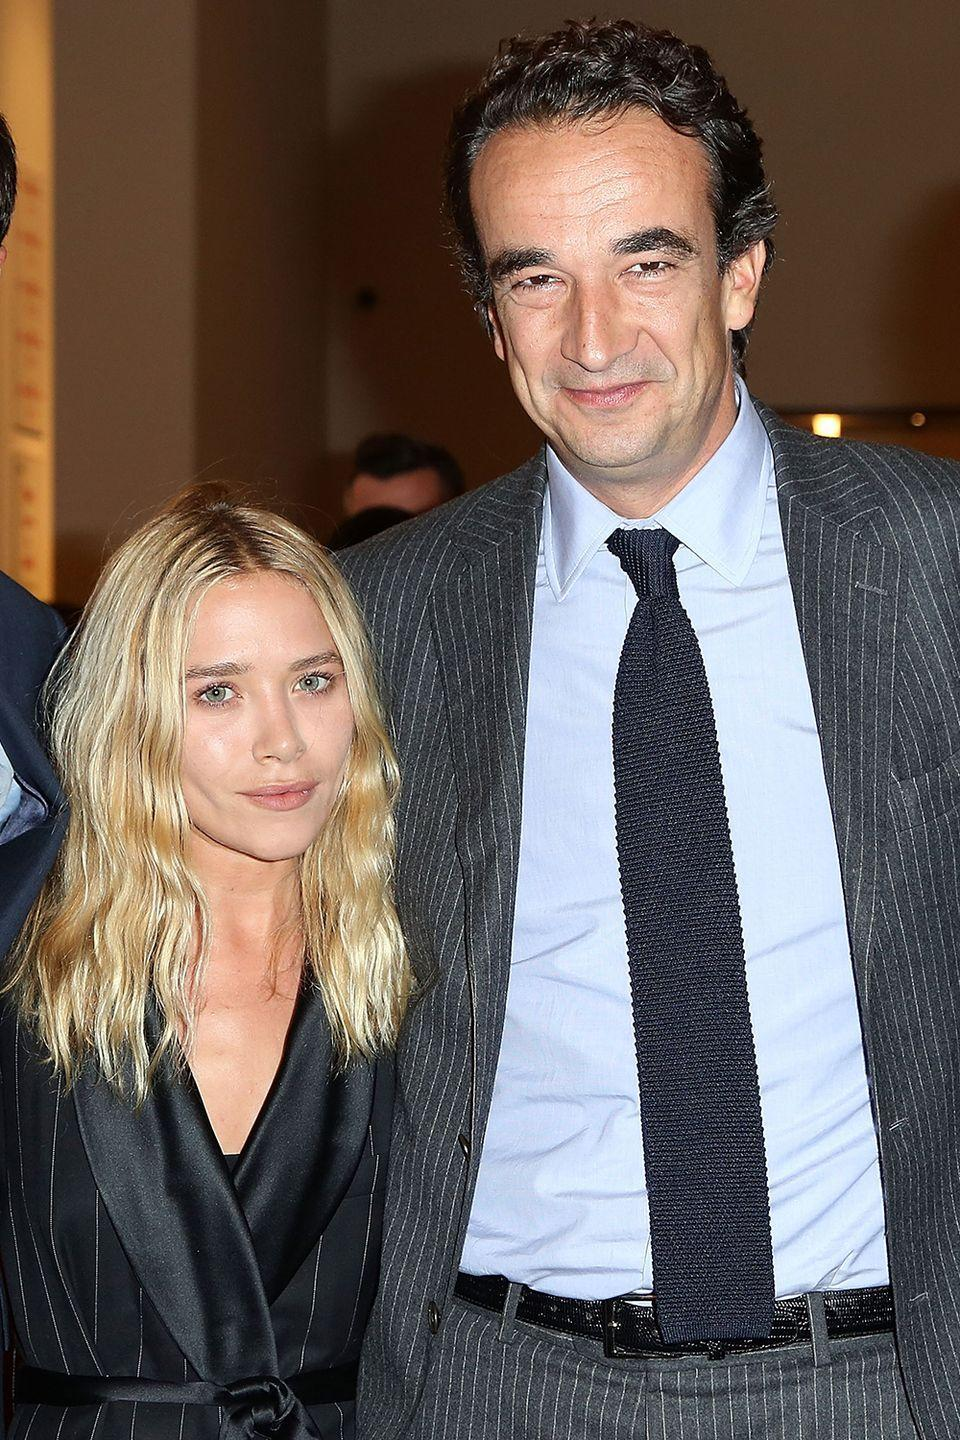 """<p><strong>How long they've been together: </strong>They've been together since 2012 and tied the knot three years later. The wedding reception reportedly had """"bowls"""" of cigarettes for guests, so there's that.</p><p><strong>Why you forgot they're together: </strong>The Olsen twins are notoriously private about their personal lives, so it isn't much of a surprise that Mary-Kate keeps her marriage under wraps (other than rare PDA-filled appearances at sporting events). </p>"""